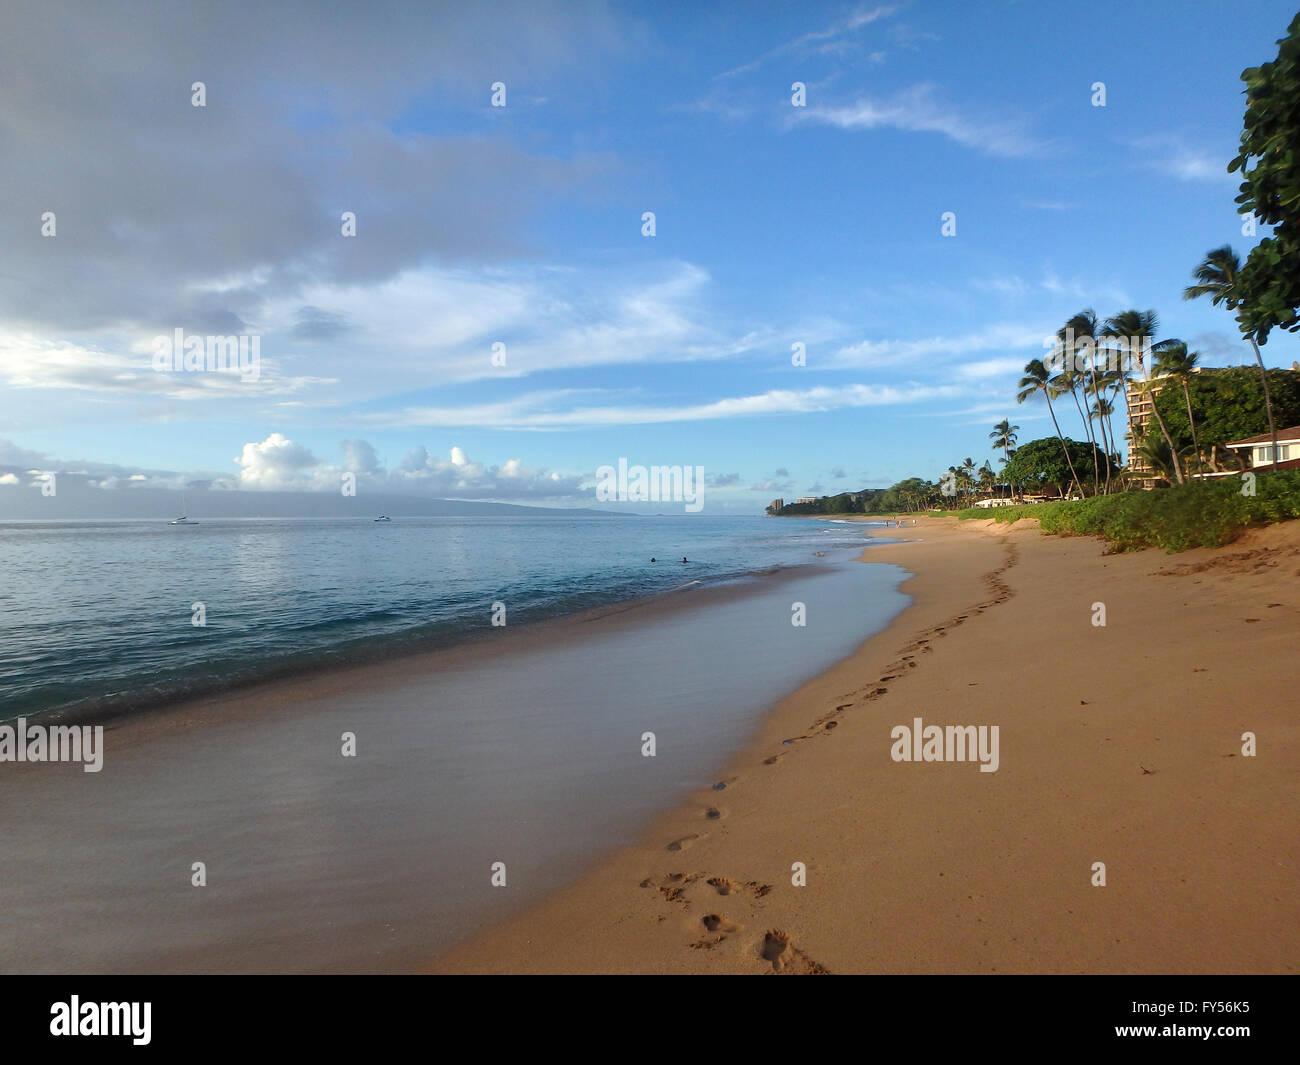 Kaanapali Beach at Dusk with gentle waves, boats in the water, foot prints and trees. Island of Lanai can be seen - Stock Image